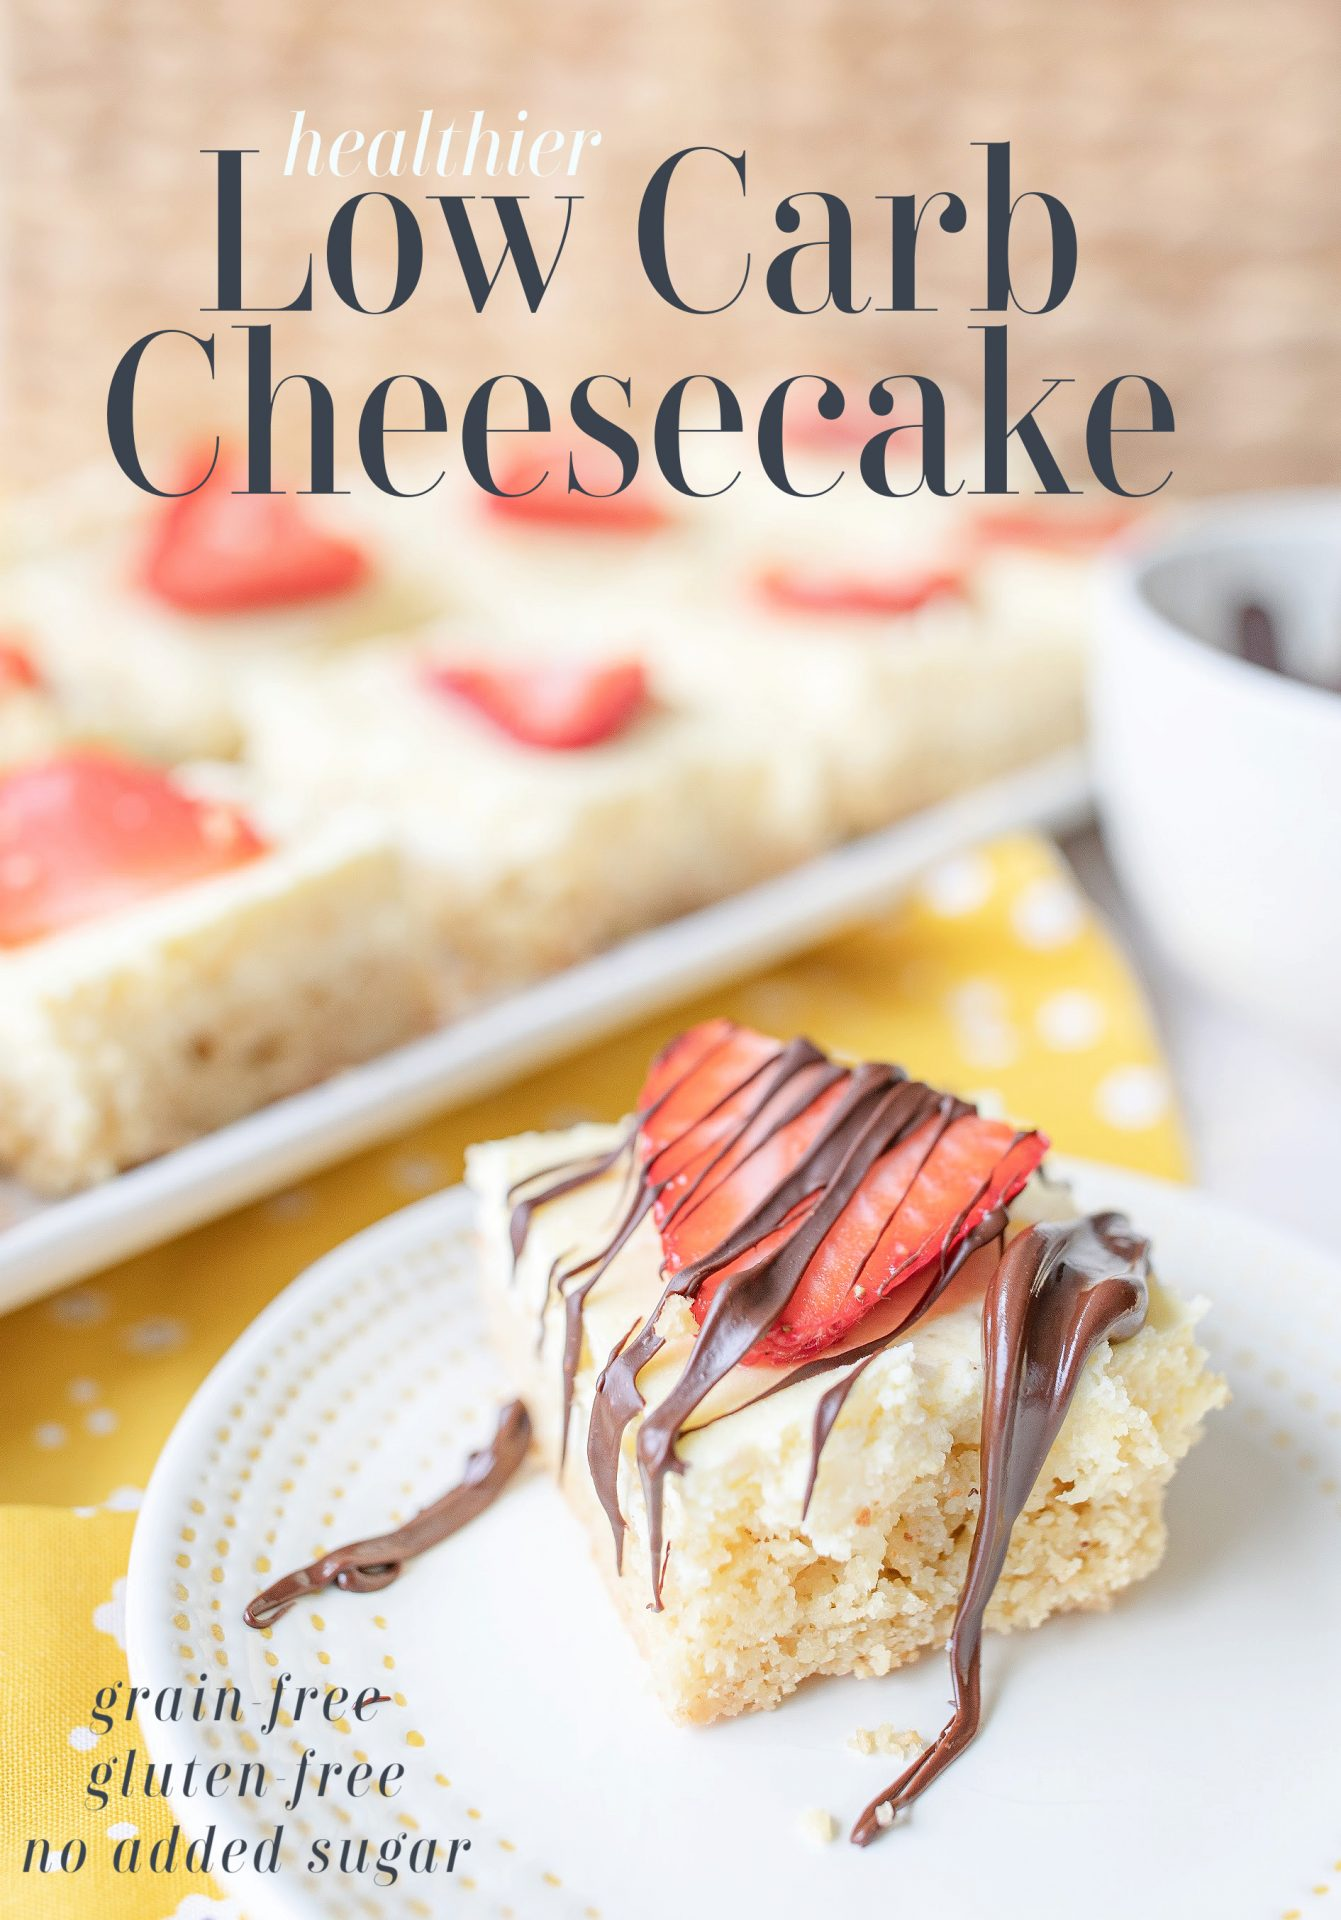 gluten free, no added sugar, cheesecake, keto cheesecake, diabetic friendly, low carb diet, low carb cheesecake, desserts, almond flour, gluten free